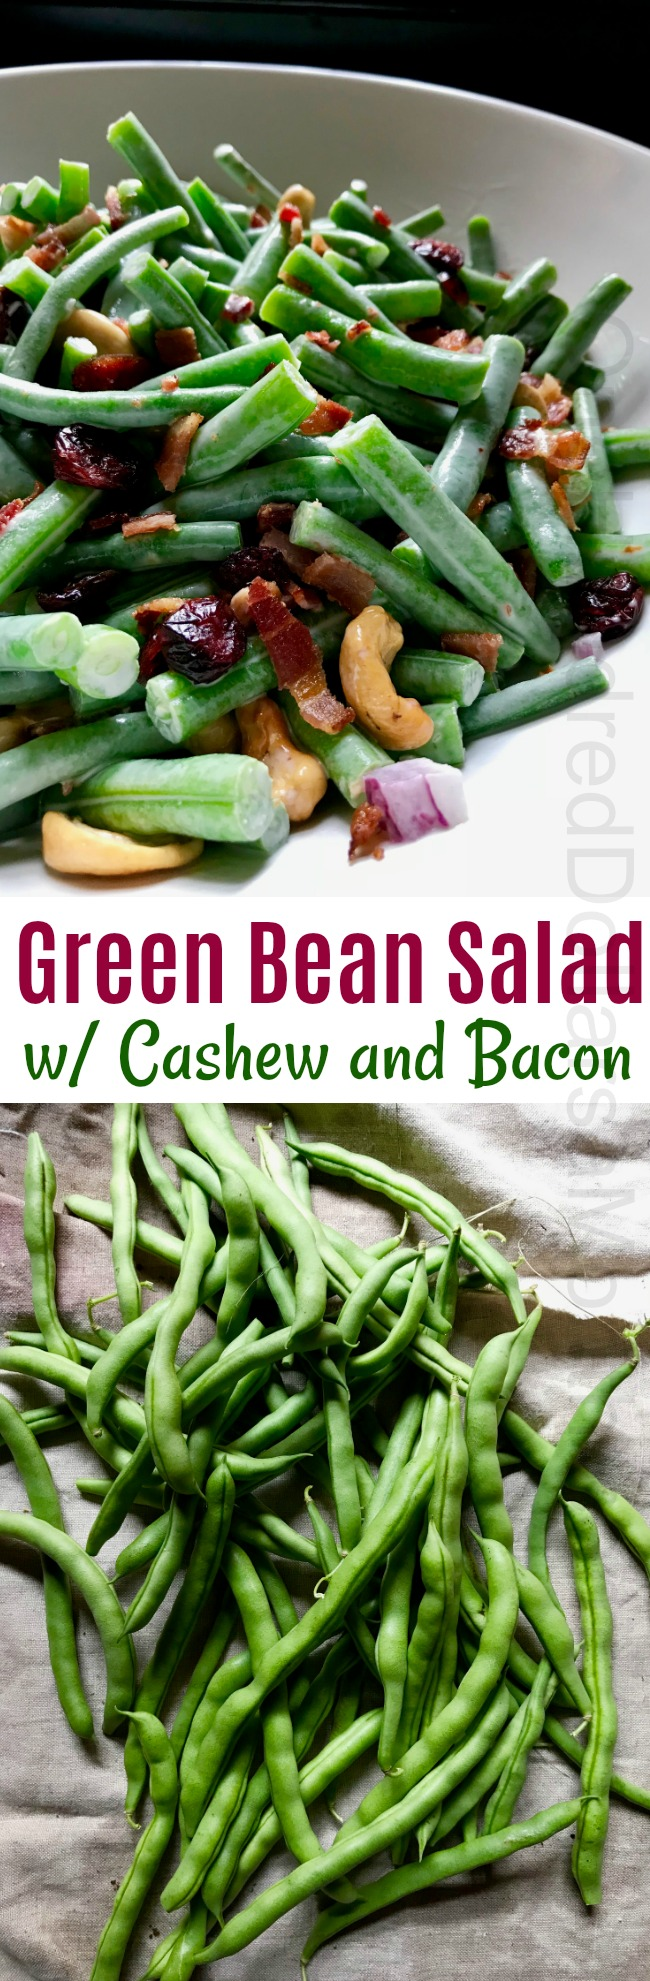 Green Bean Salad with Cashew and Bacon Topping